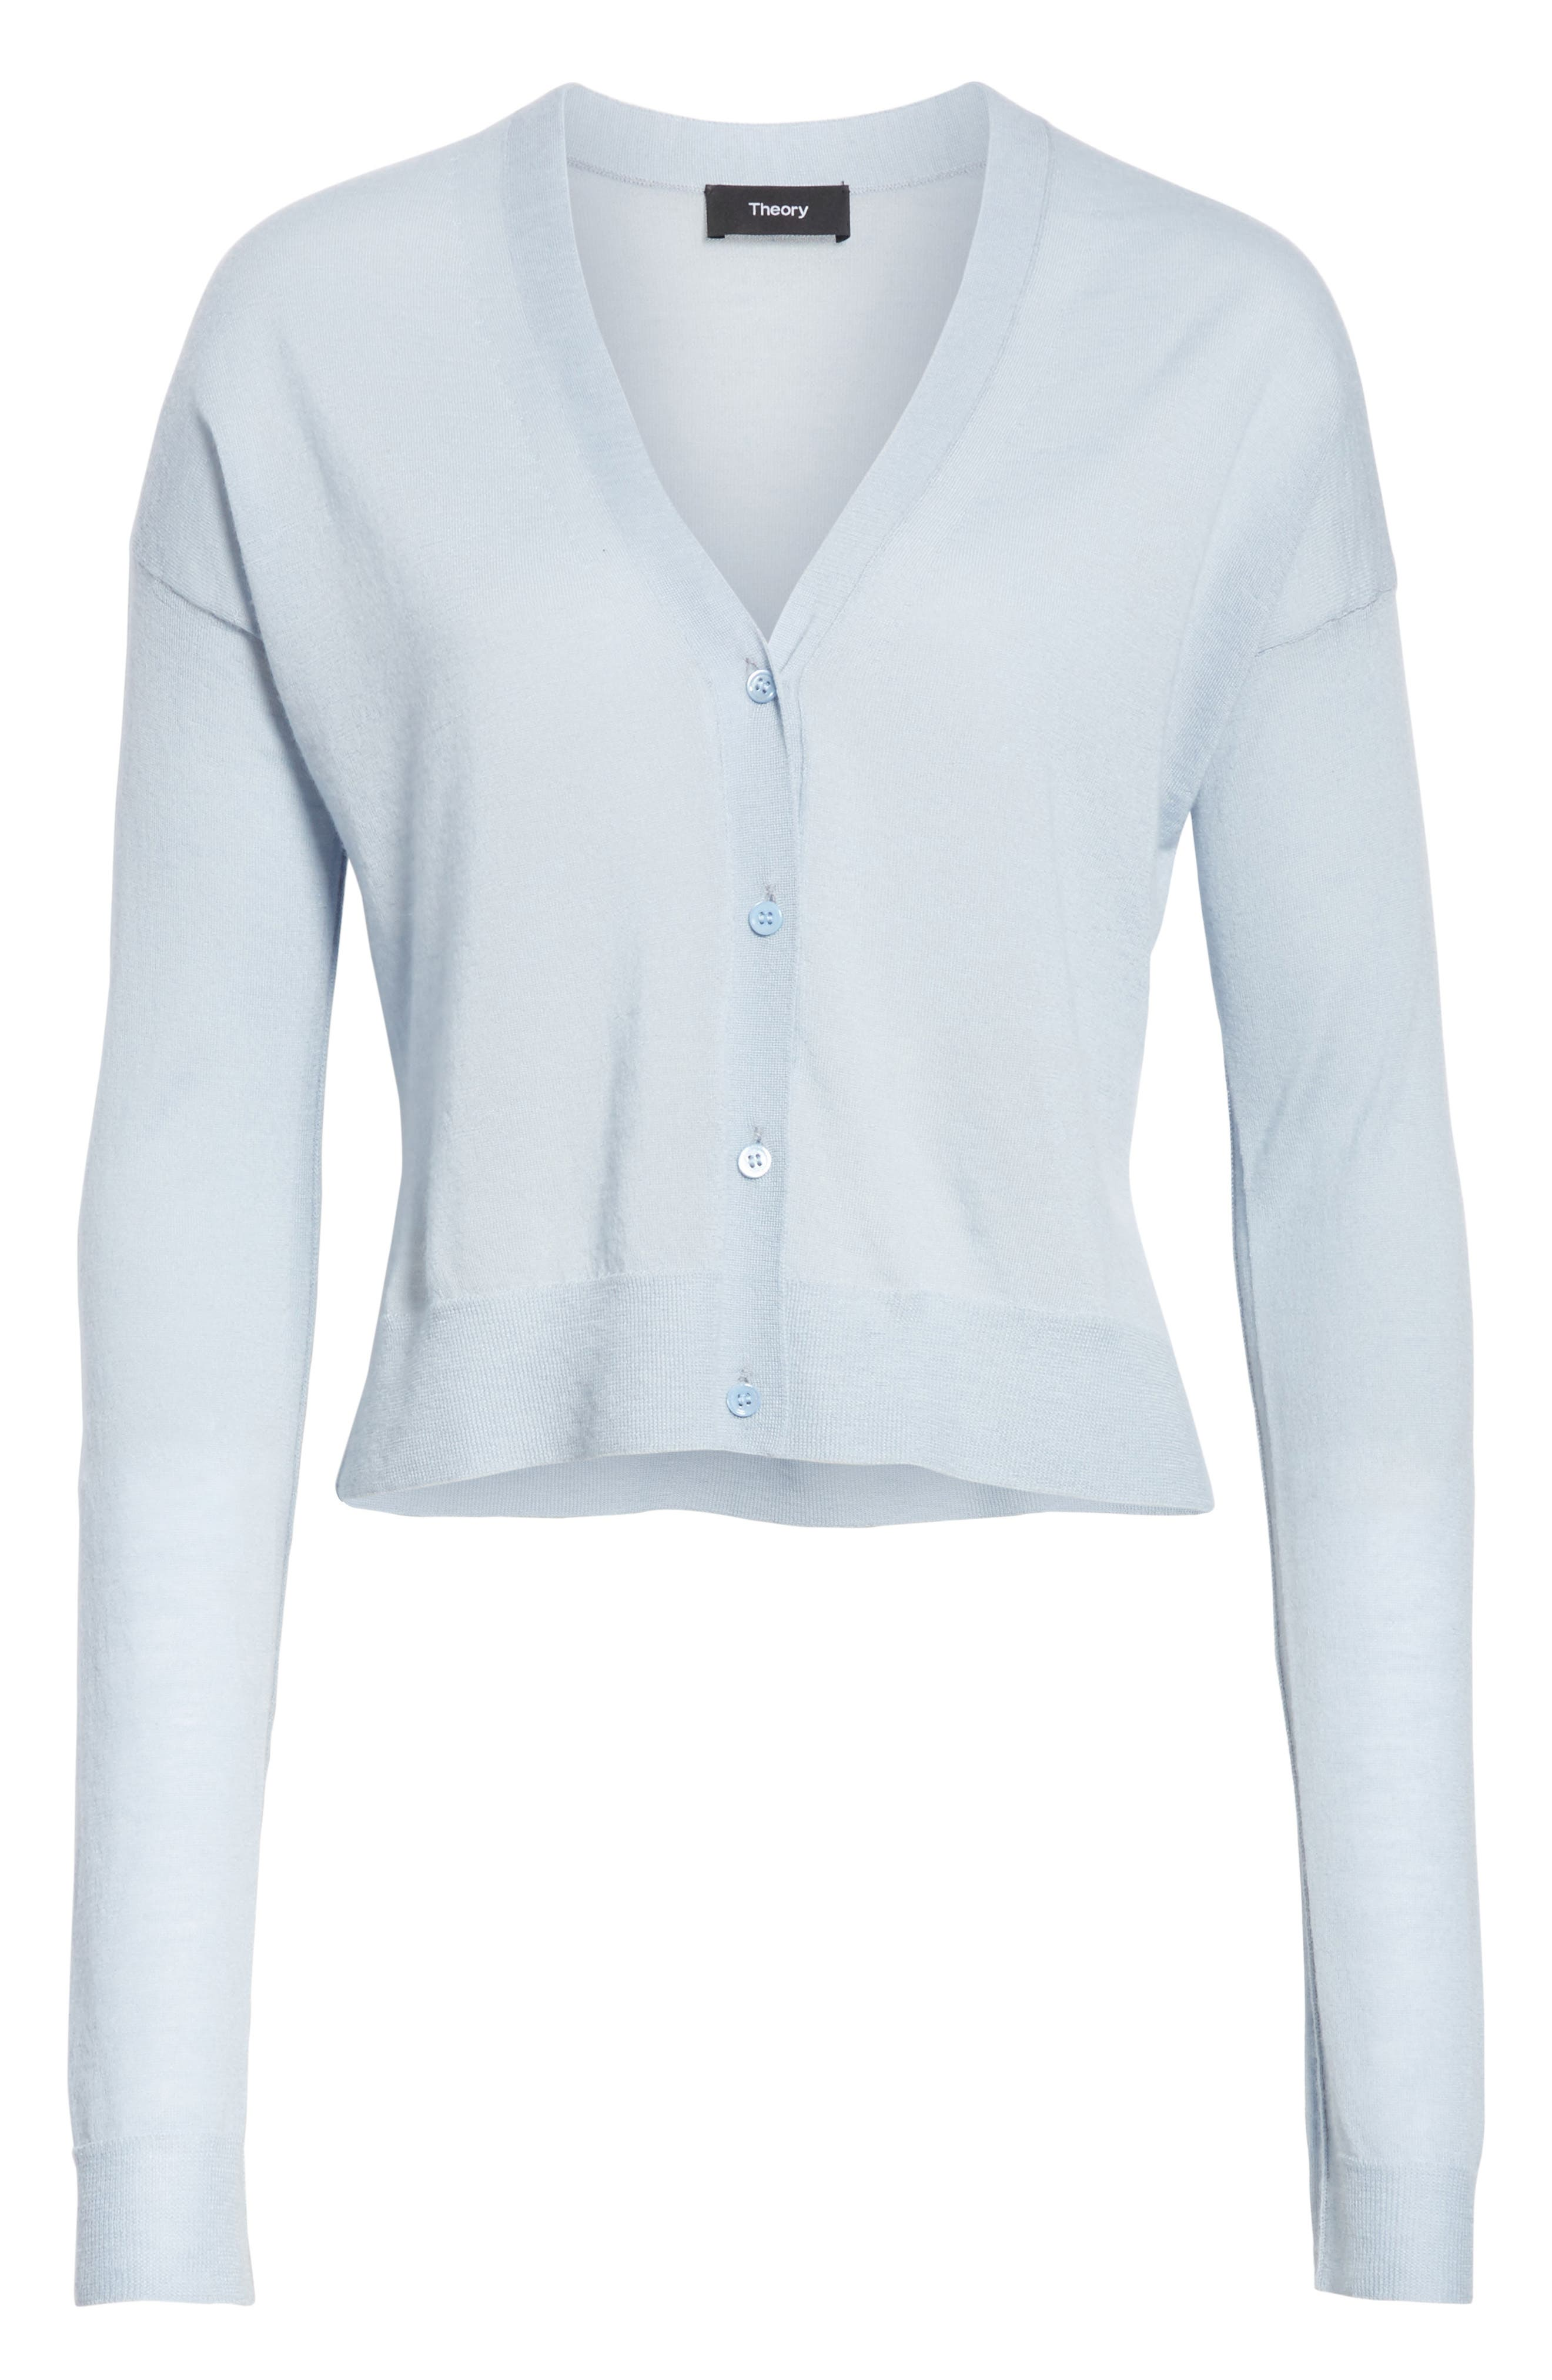 Hanelee Featherweight Cashmere Cardigan,                             Alternate thumbnail 6, color,                             489